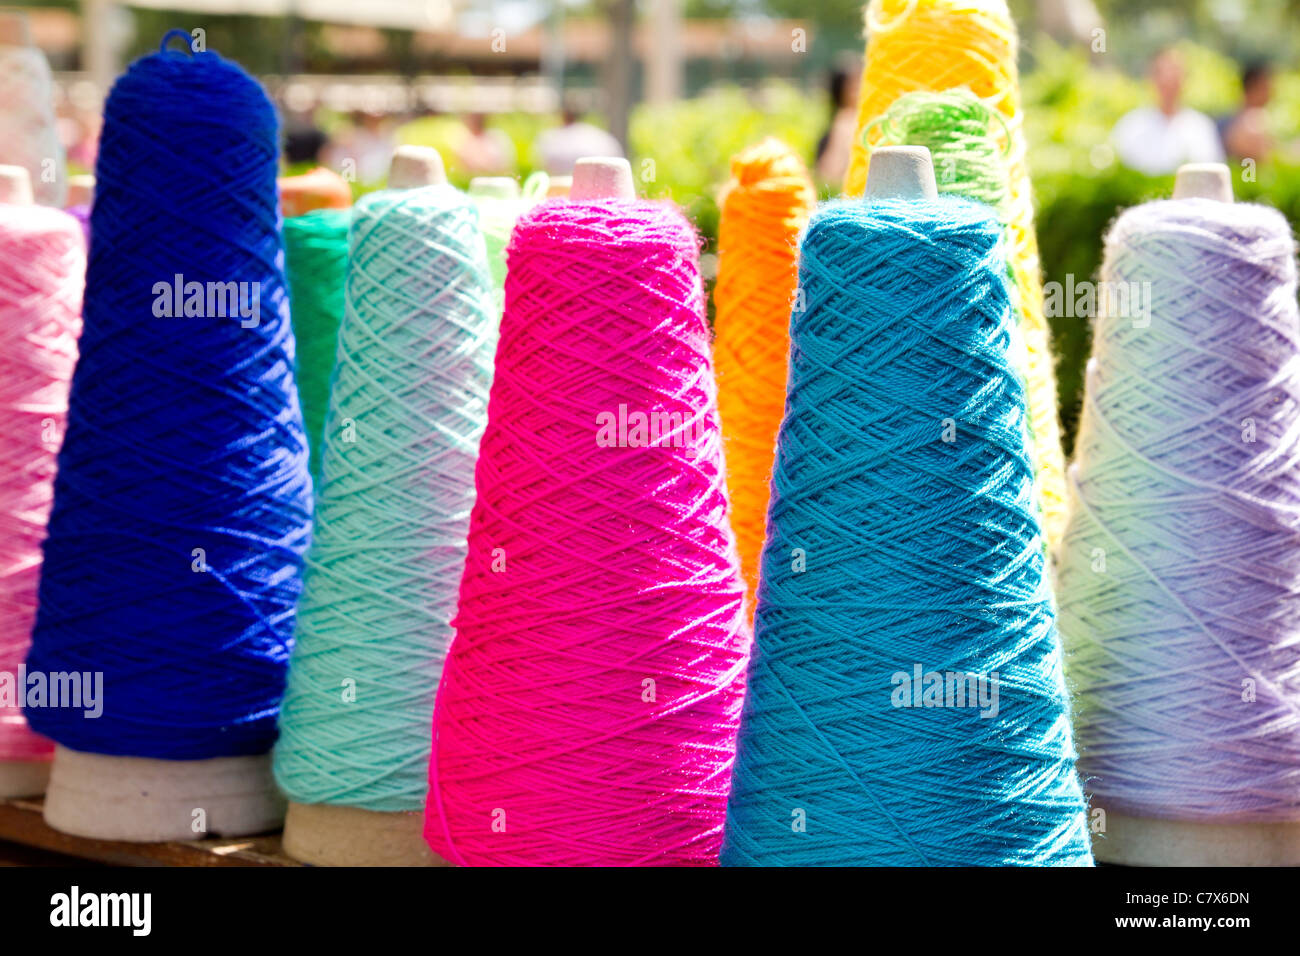 Embroidery colorful thread spool in rows - Stock Image